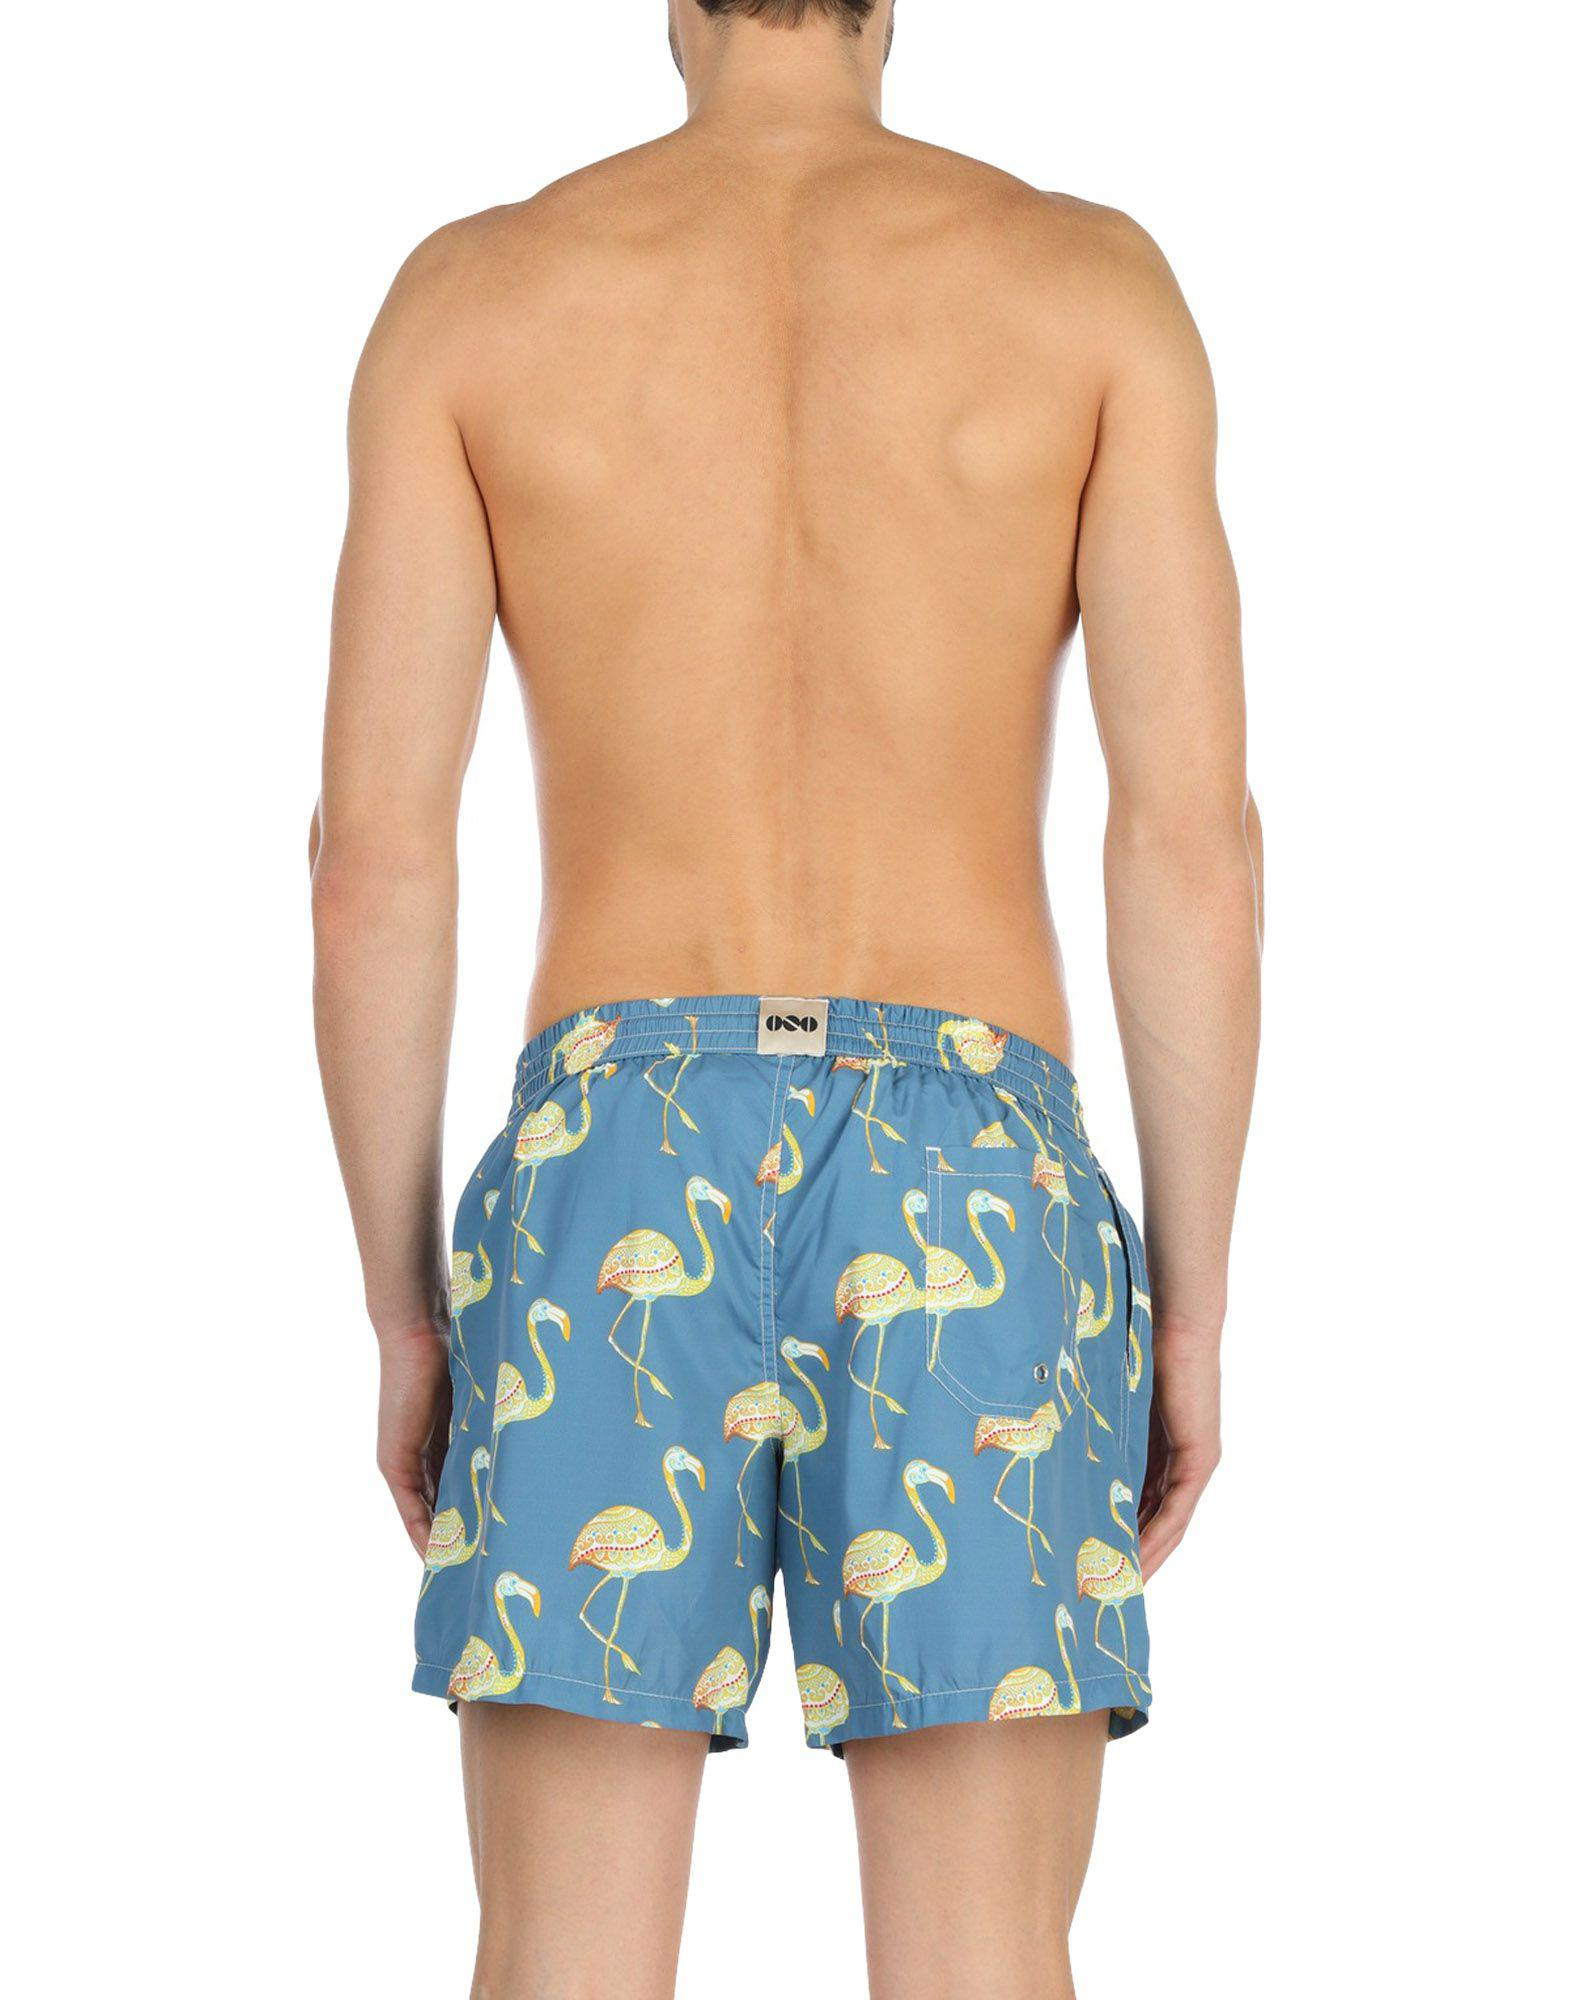 2969217a95fc7 Lyst - Nos Beachwear Swimming Trunks in Blue for Men